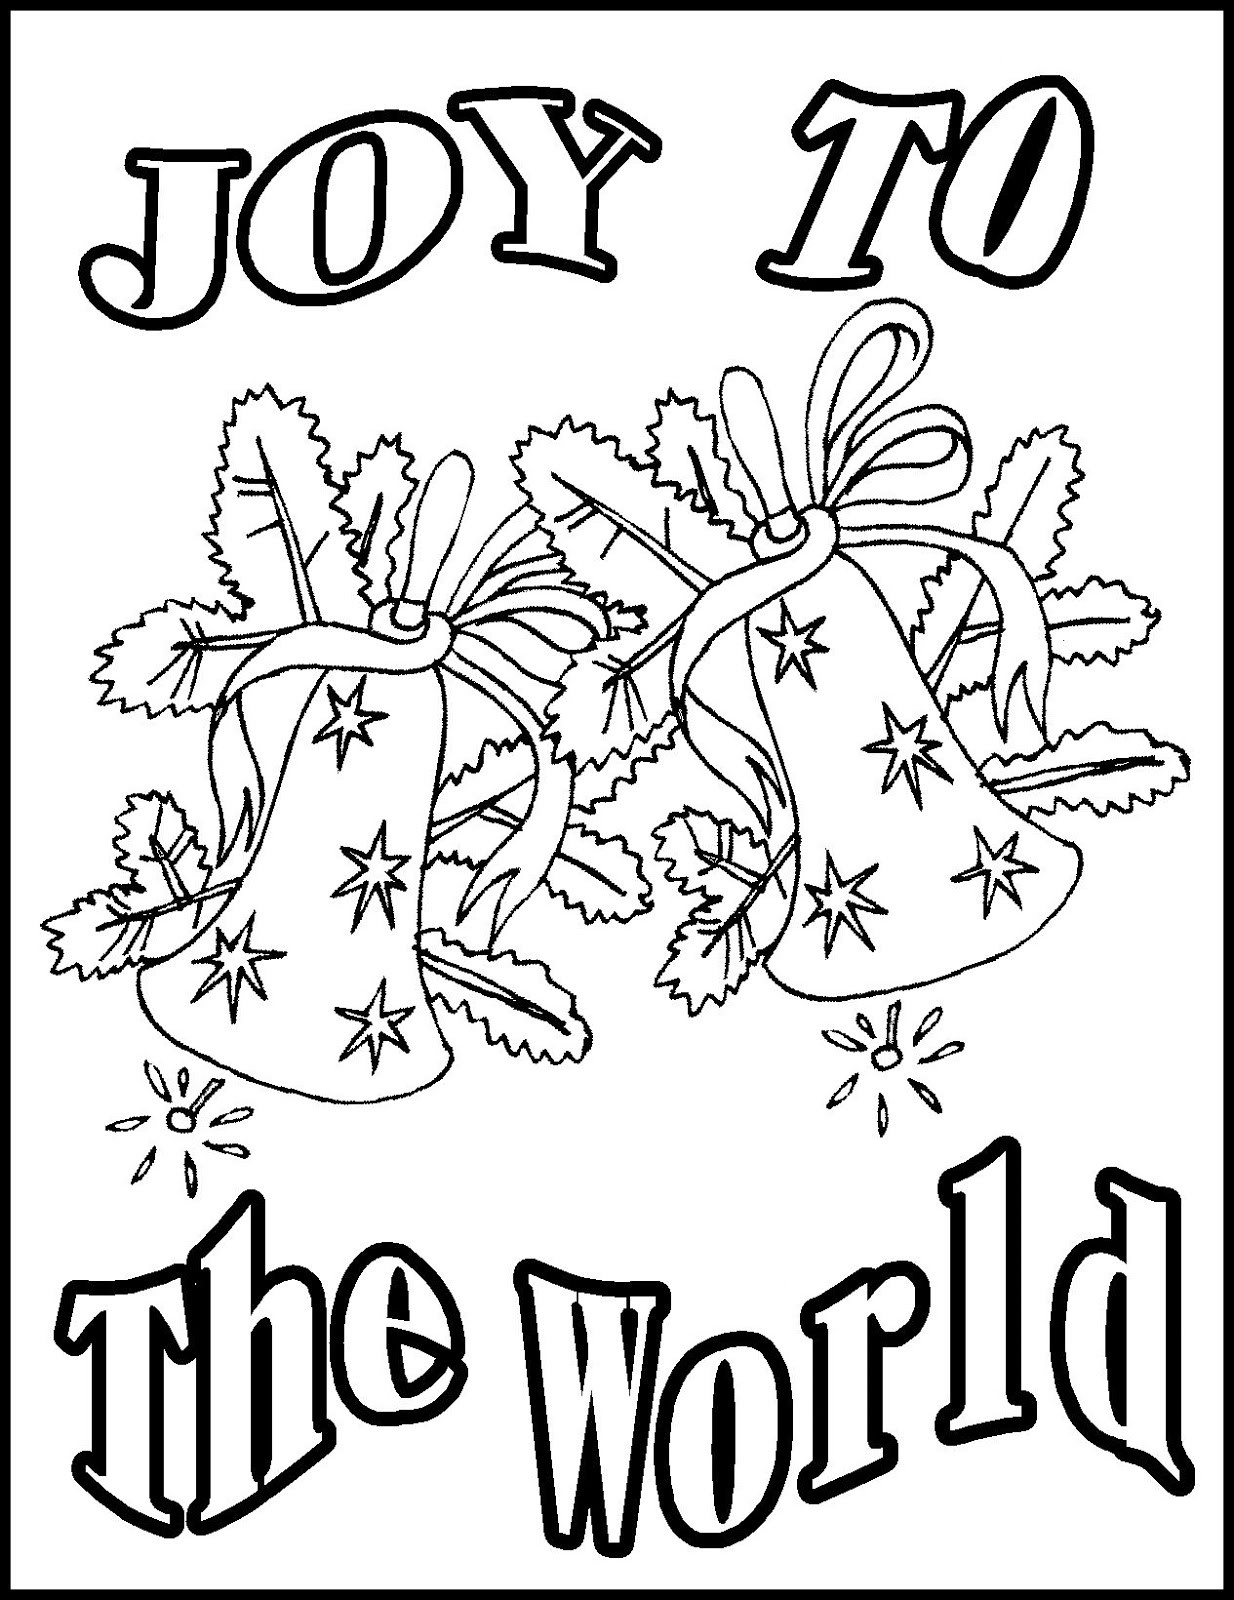 Best ideas about Christmas Christian Coloring Pages For Kids . Save or Pin Children s Gems In My Treasure Box Christmas Coloring Sheets Now.